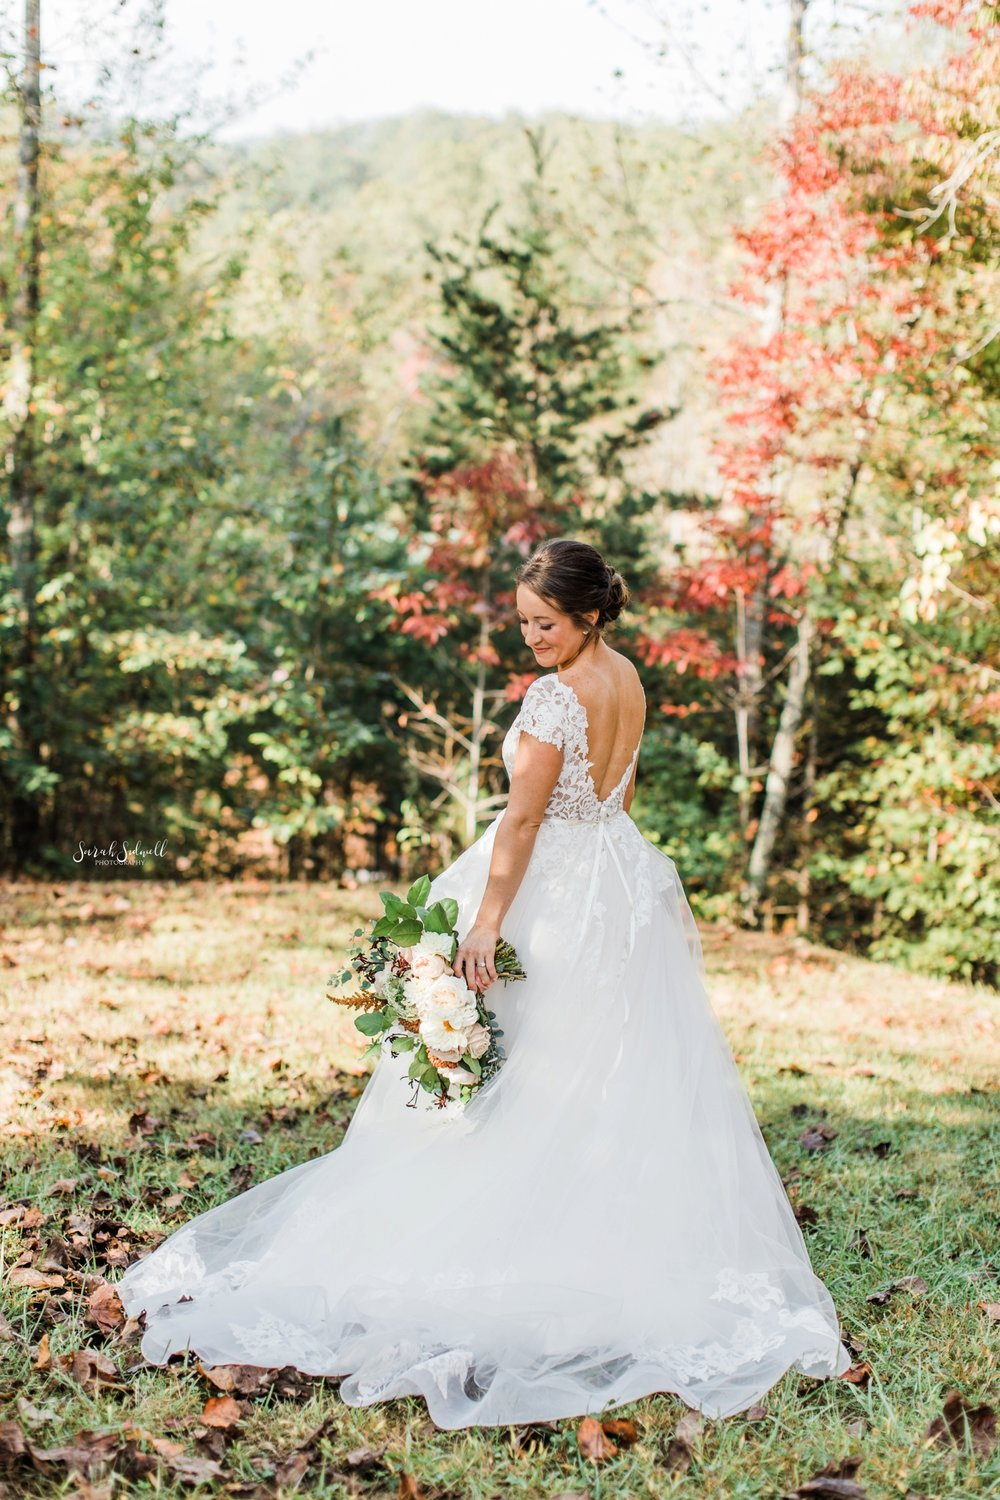 A bride wearing a white dress stands among wild flowers.